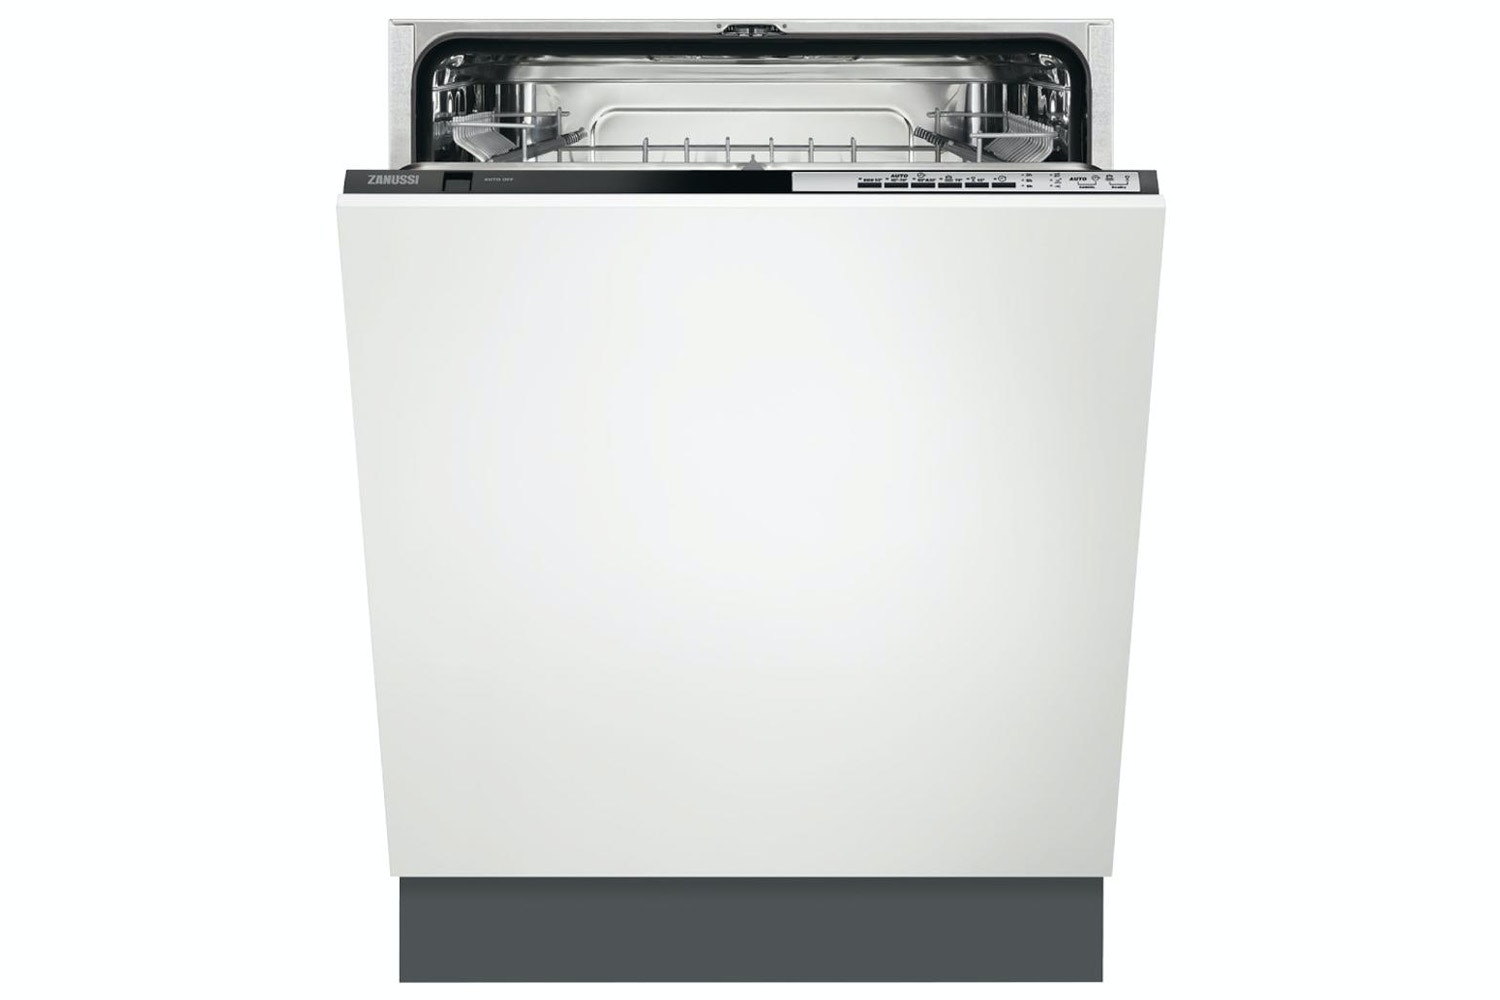 Zanussi Fully Integrated Dishwasher | 13 Place | ZDT24004FA